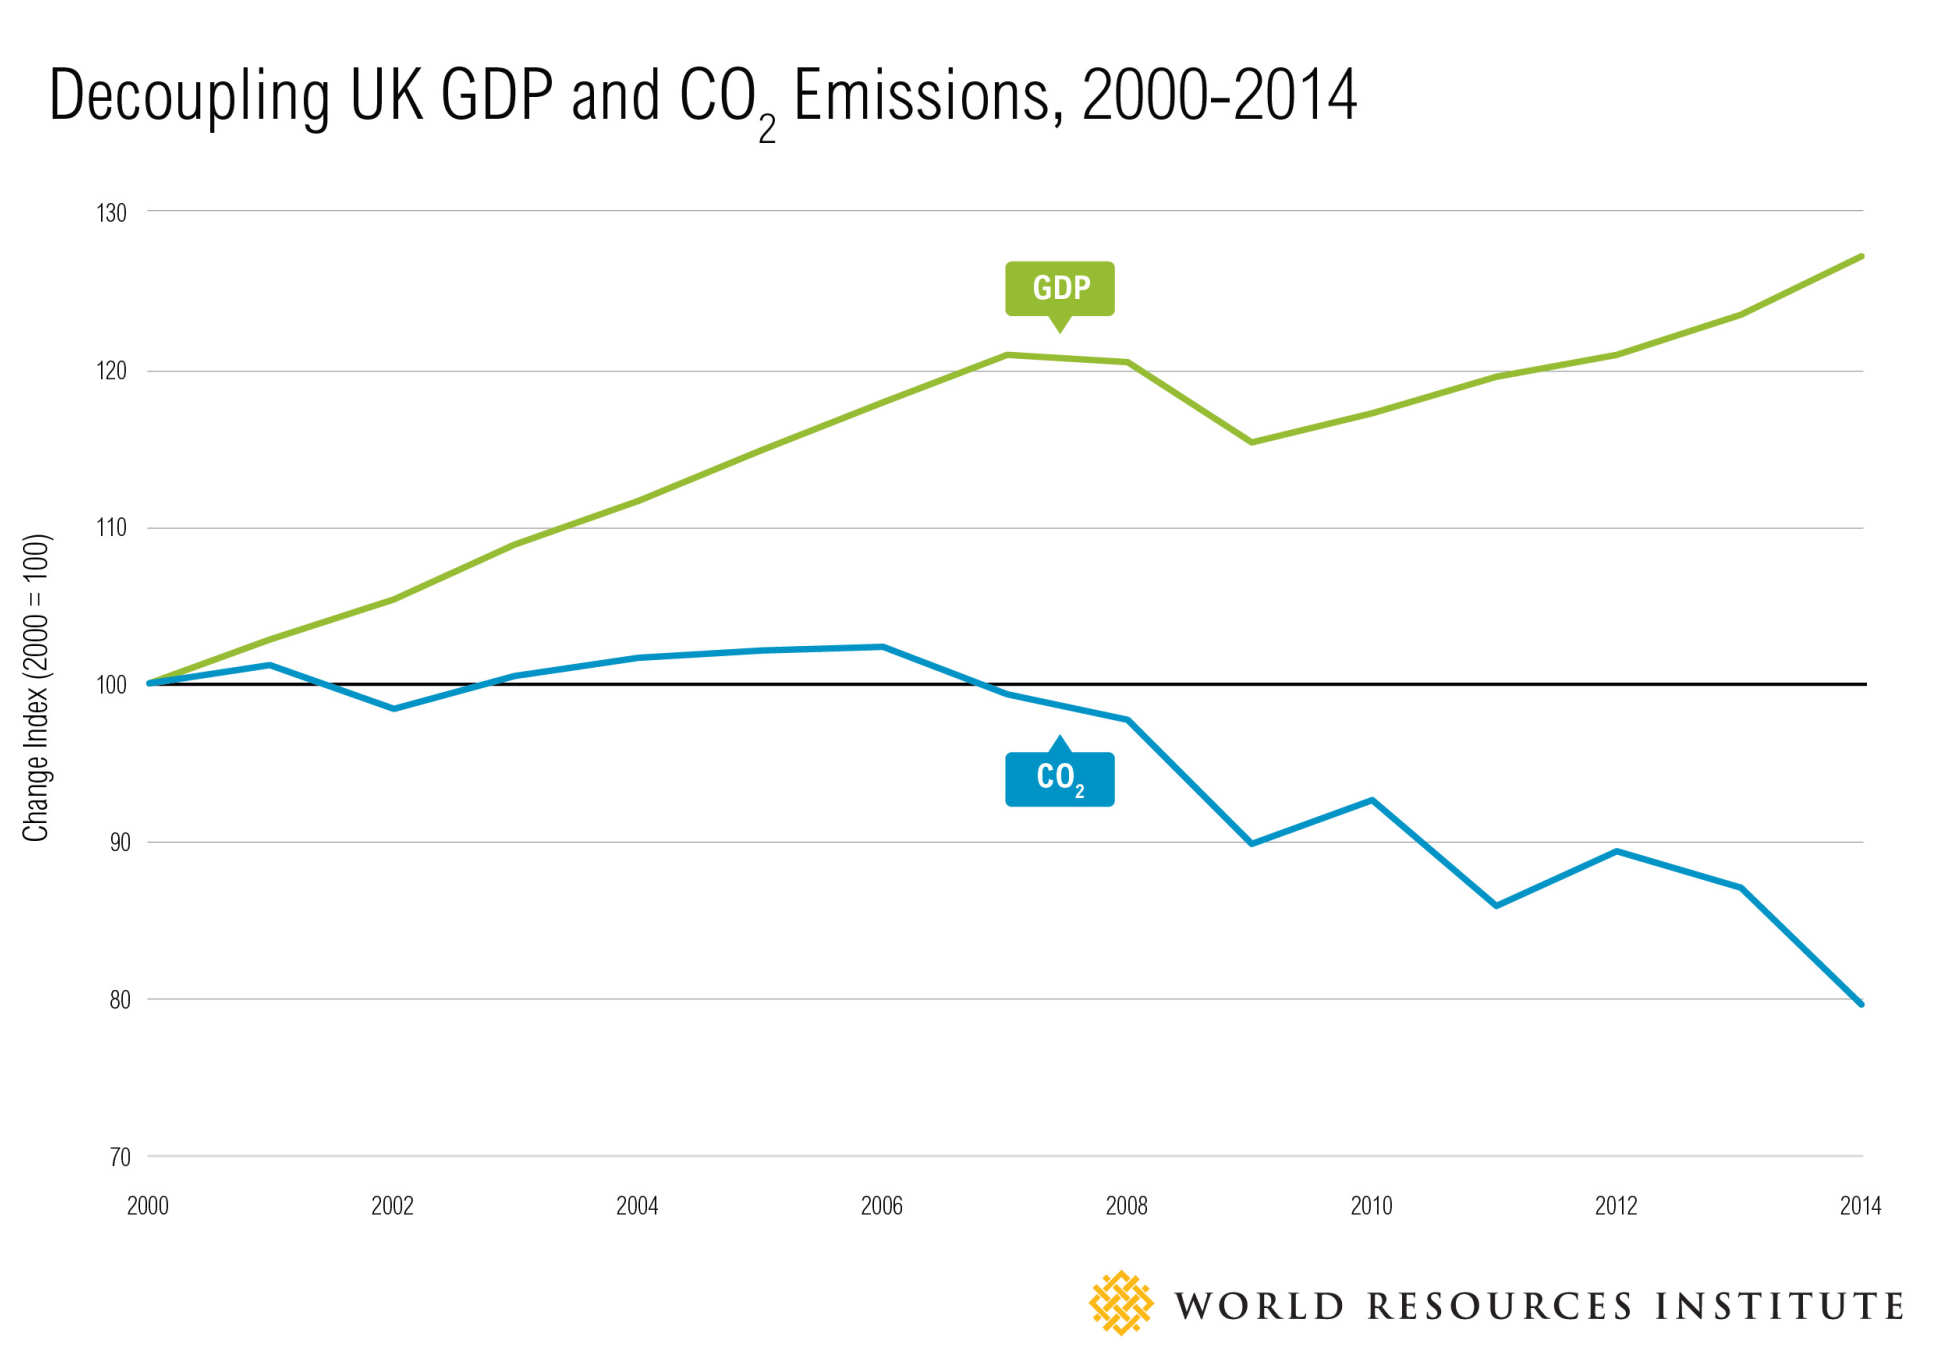 Graph showing decoupling of economic growth and CO2 emissions in the UK